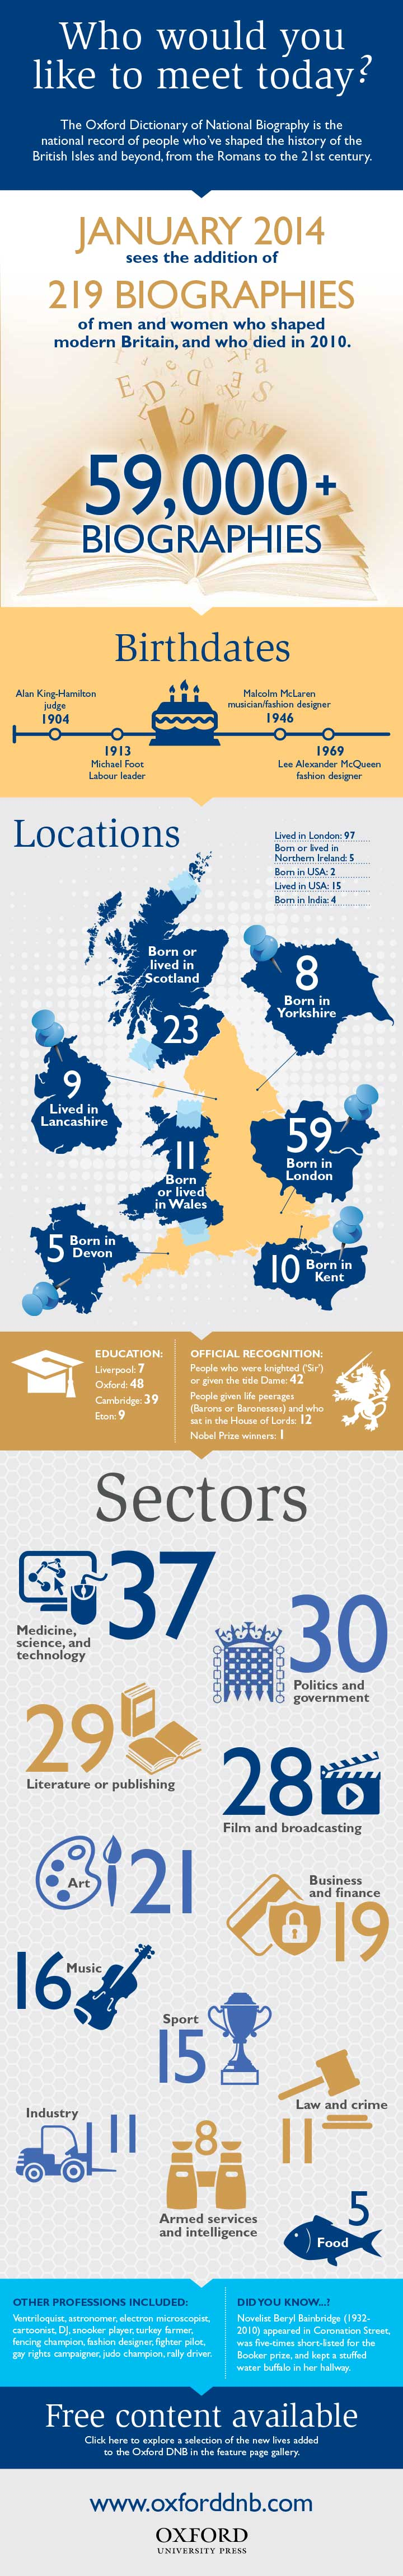 Oxford DNB January 2014 update infographic